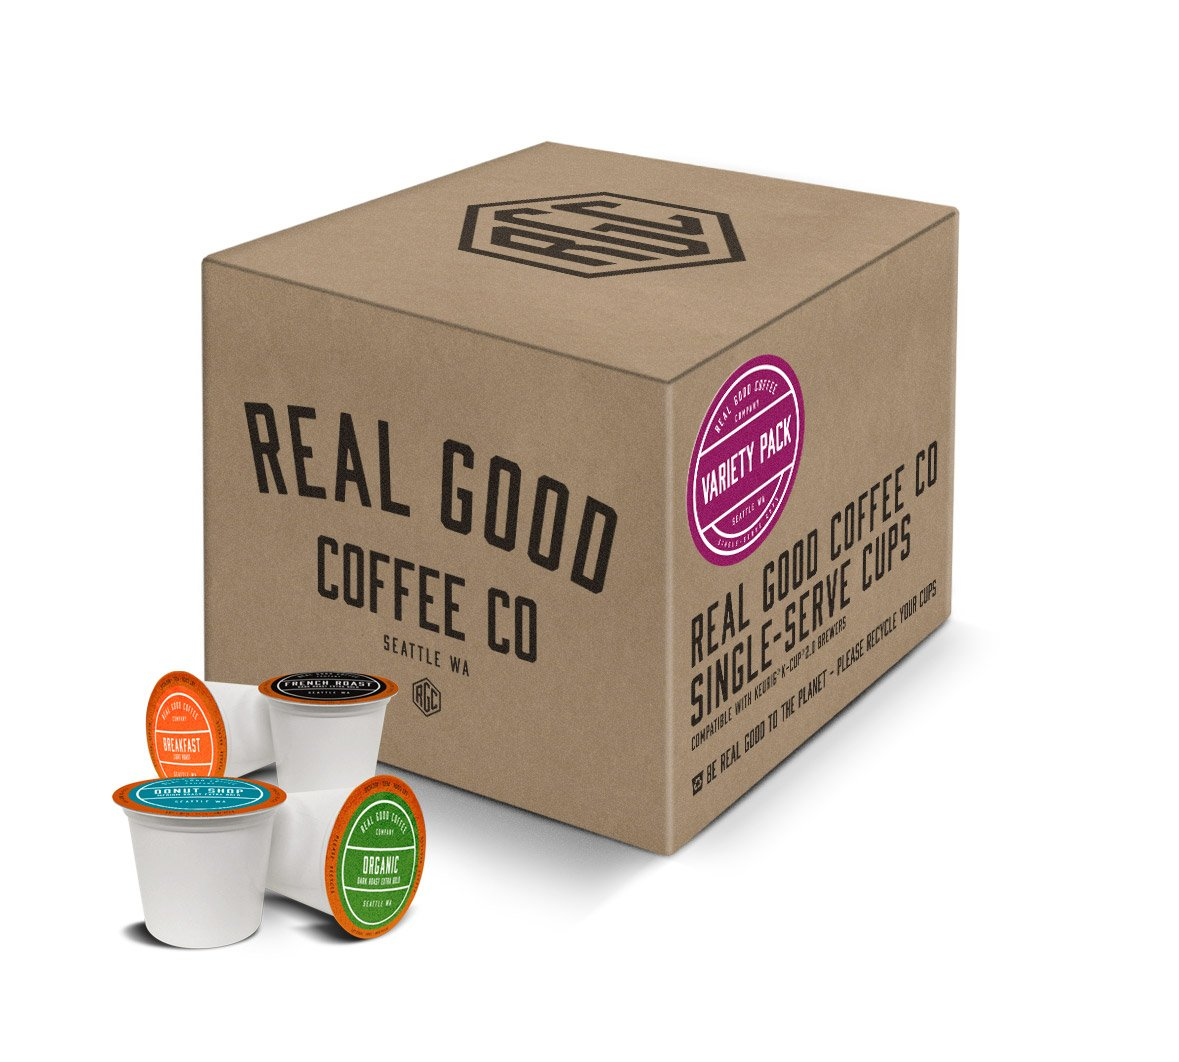 Real Good Coffee Co Variety Pack Coffee K Cups, 36 Count, Recyclable Single Serve Coffee Pods for Keurig K Cup Brewers